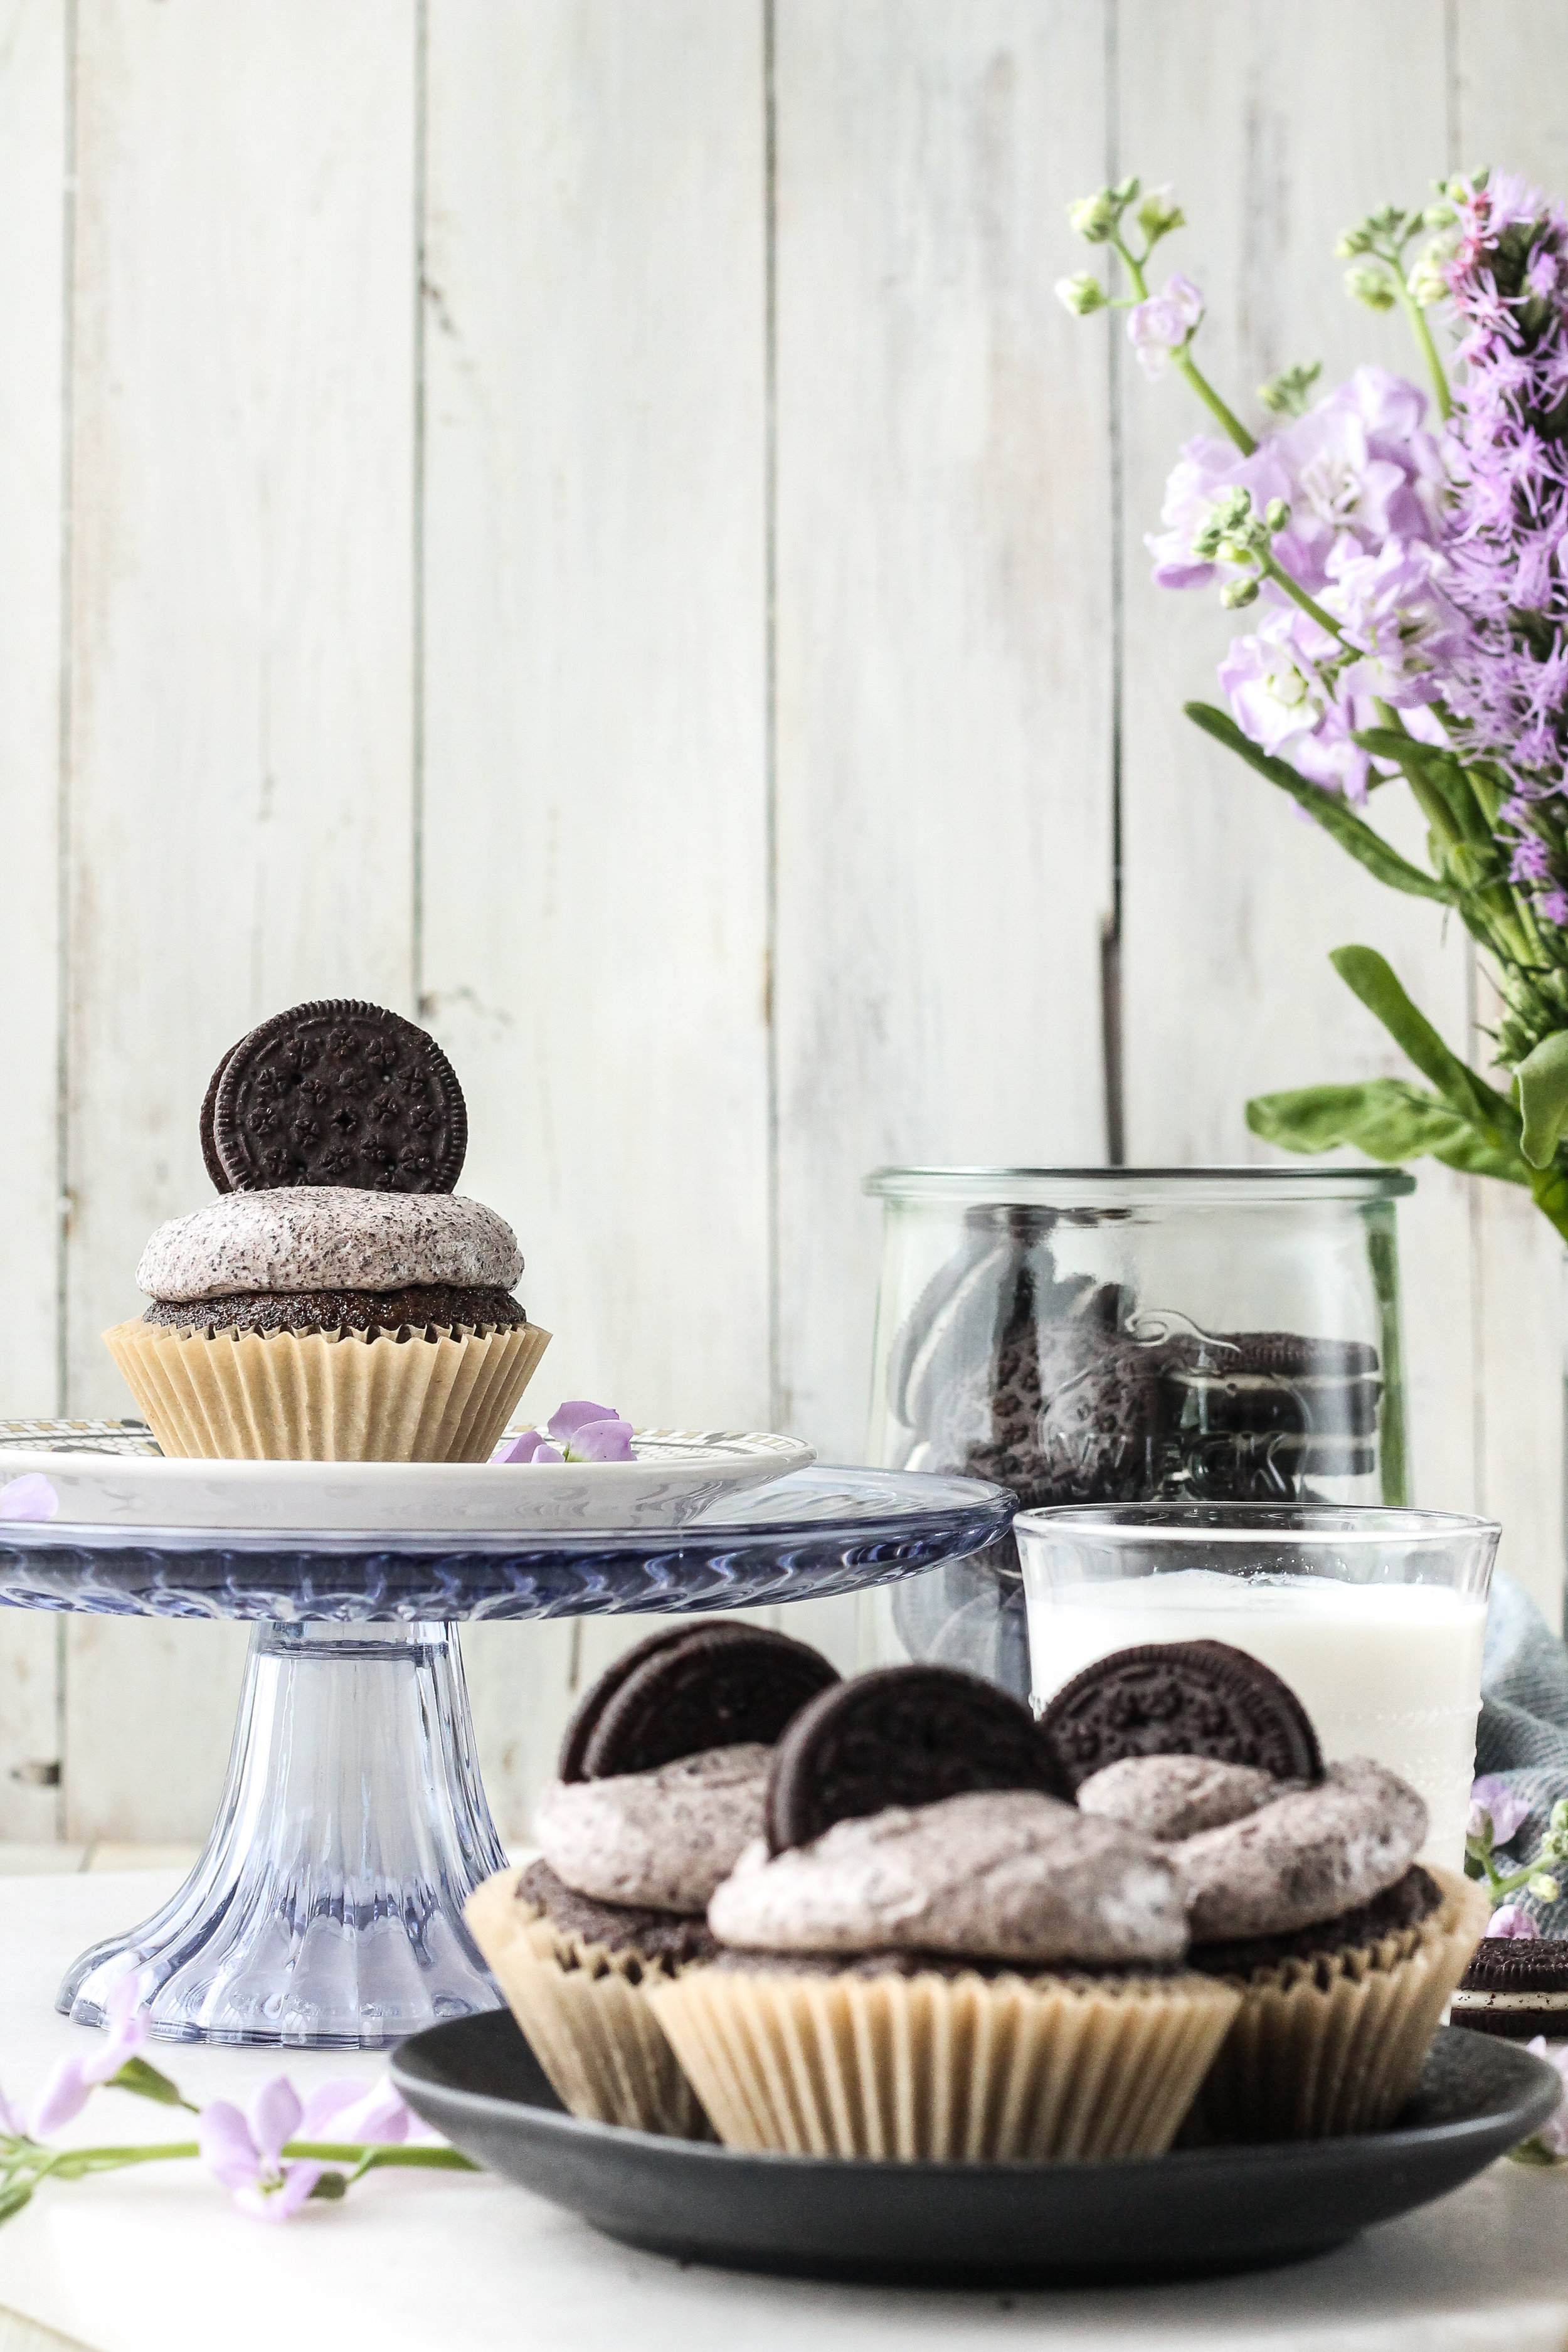 These cookies and cream cupcakes feature a Swiss meringue buttercream that features both butter and cream cheese - producing the dreamiest rich and tangy frosting that is the best of both worlds.  You will not be able to wait until your birthday to make these cupcakes! Find this recipe on www.pedanticfoodie.com!